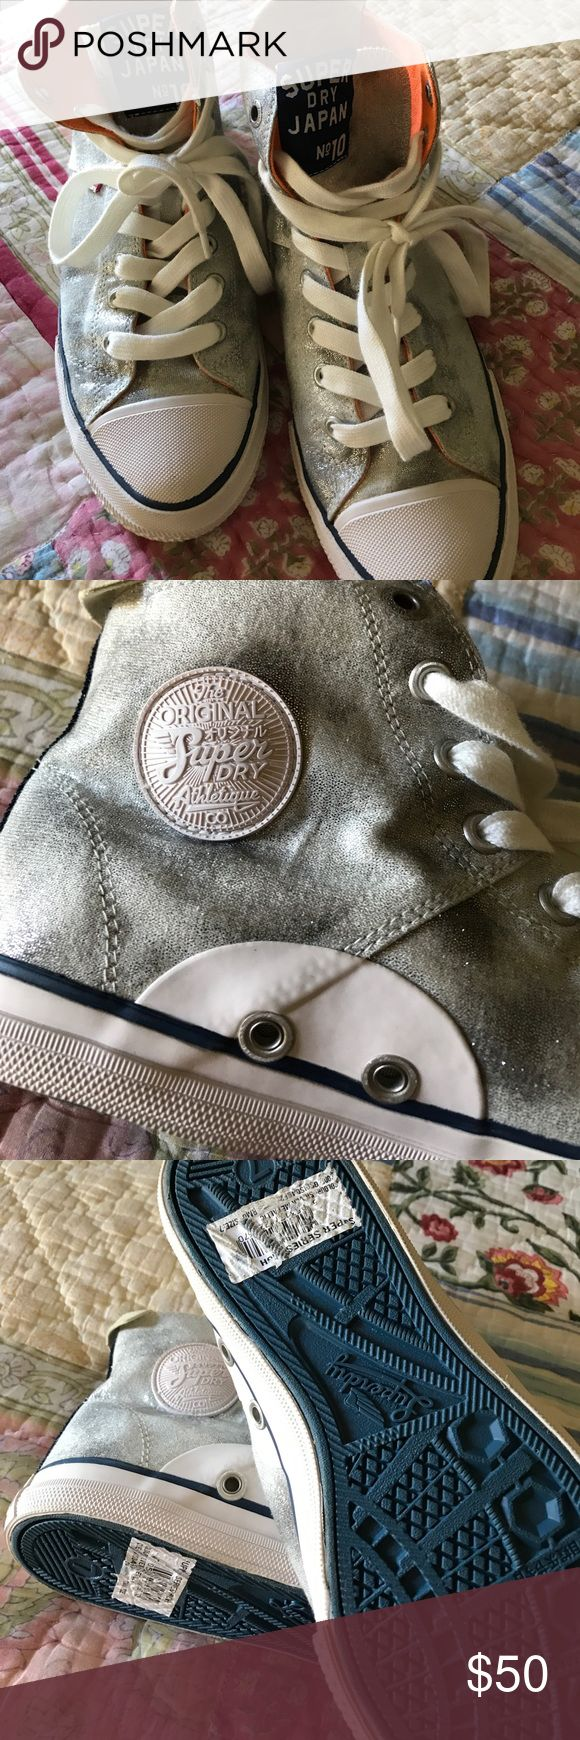 Super dry high top sneakers Brand new never worn from super dry in London   Shiny silver metallic and cool 😎 no box Superdry Shoes Sneakers